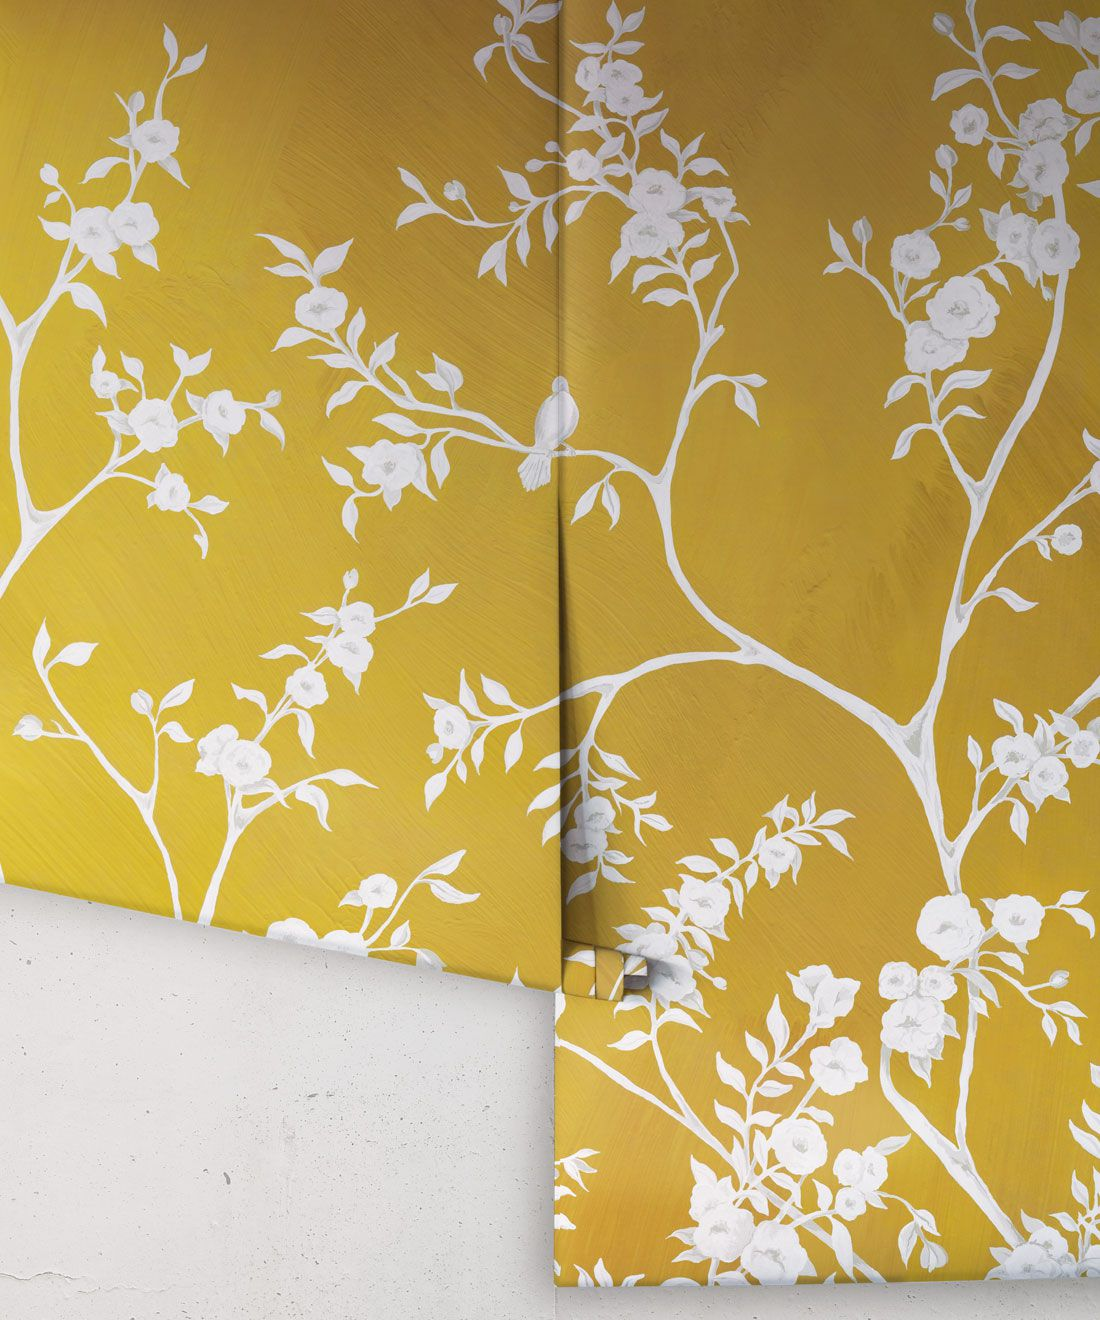 Blooming Joy • Chinoiserie Wallpaper by Danica Andler • Mustard Rolls